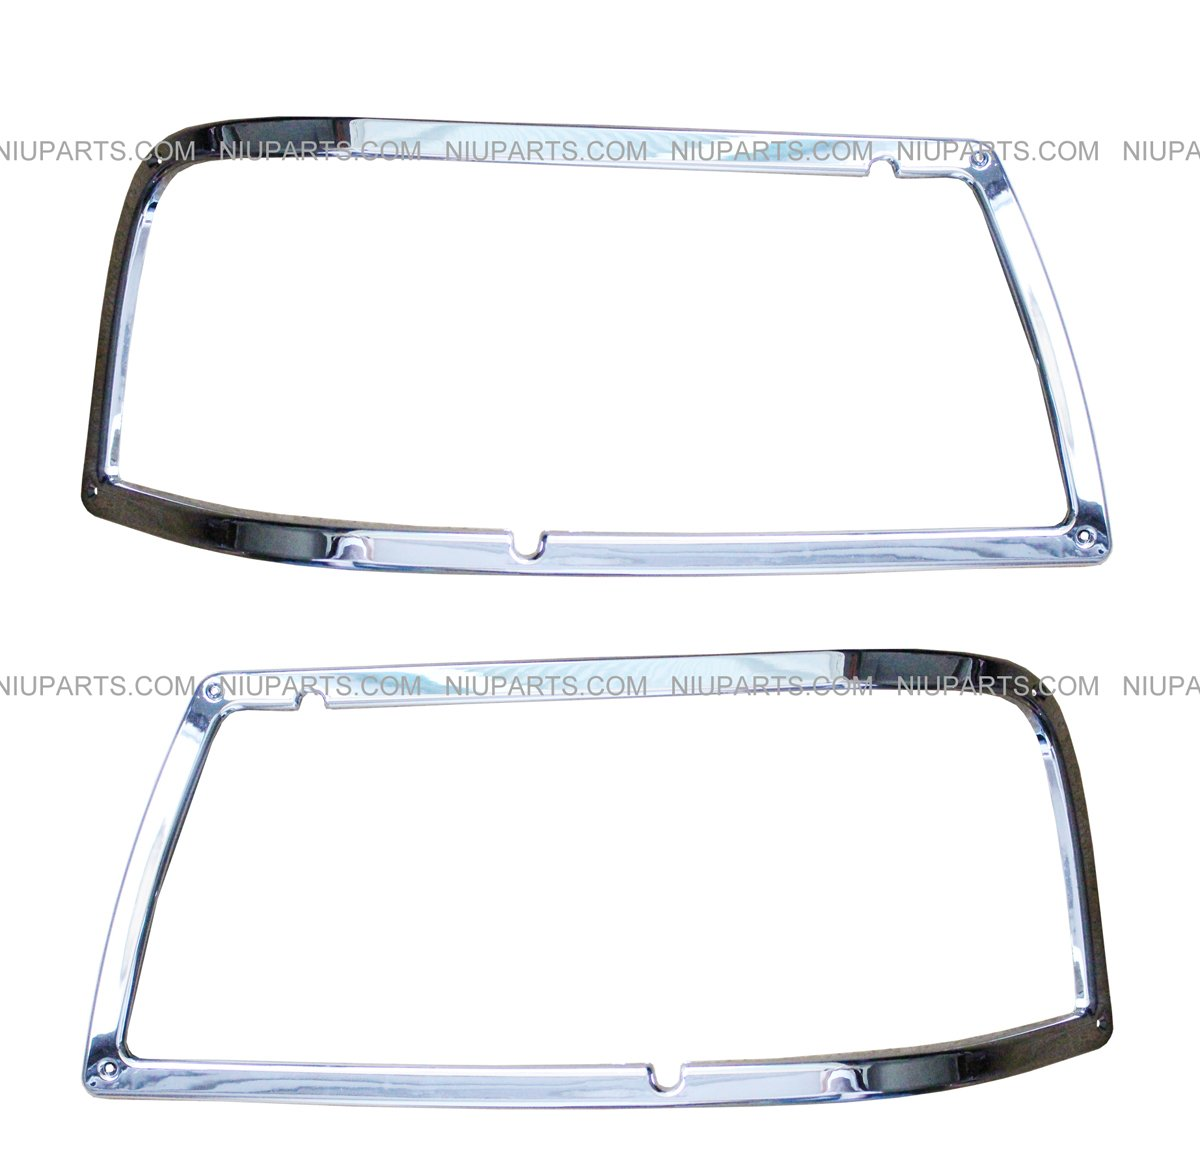 Headlight Bezel Pair - Chrome (Fit: Peterbilt 385 375) by NIUPARTS